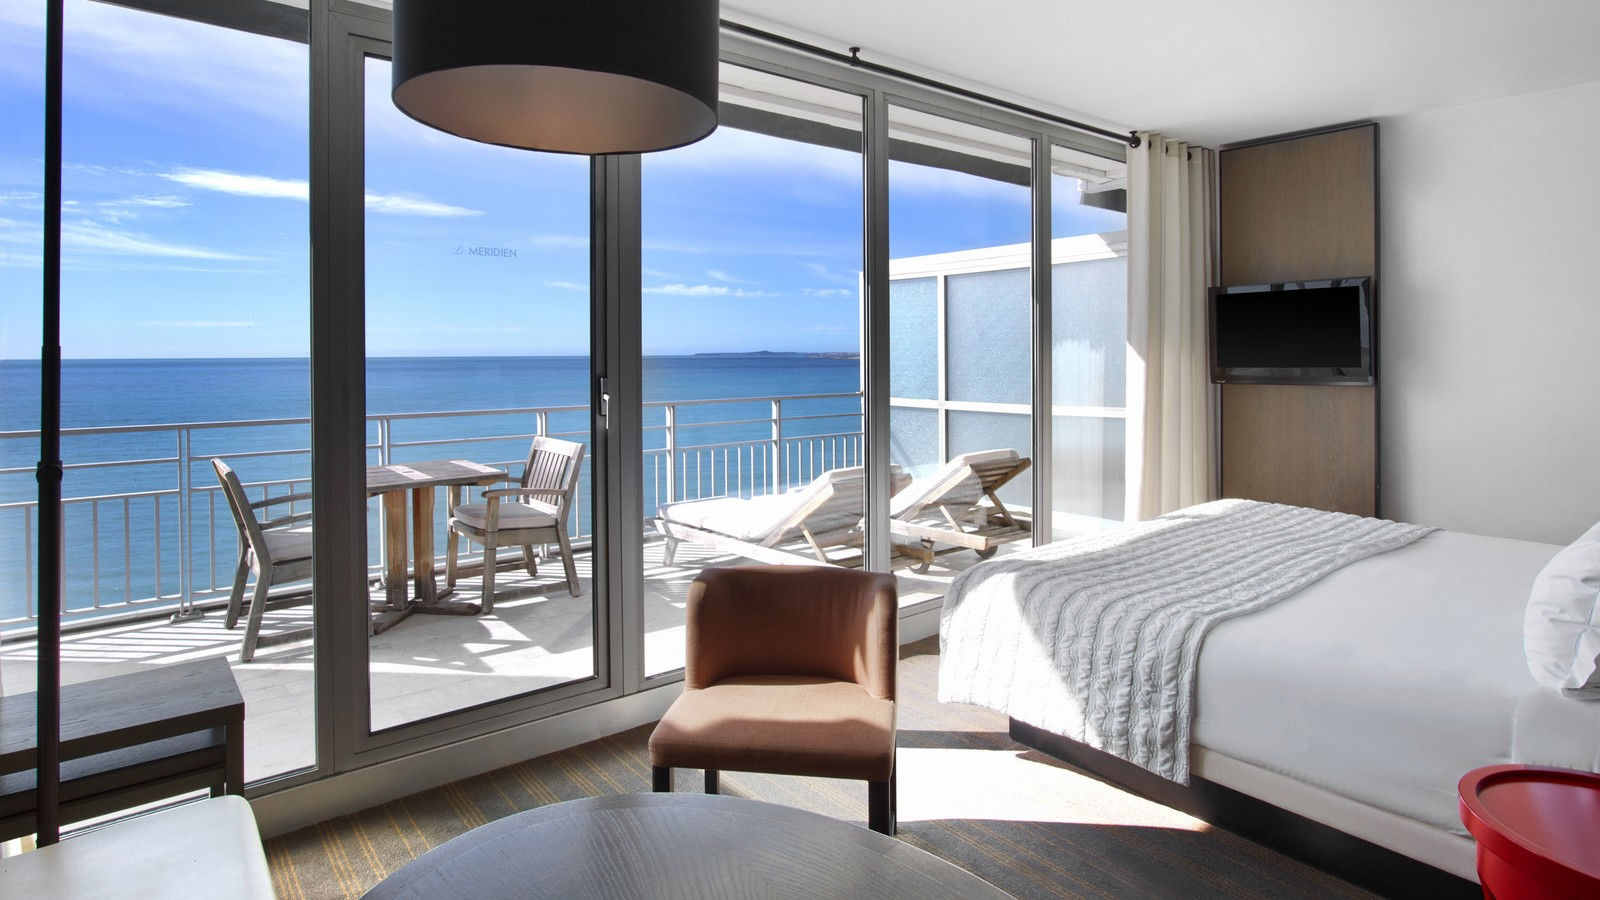 Executive Room Sea View - Terrace In Le Meridien Nice